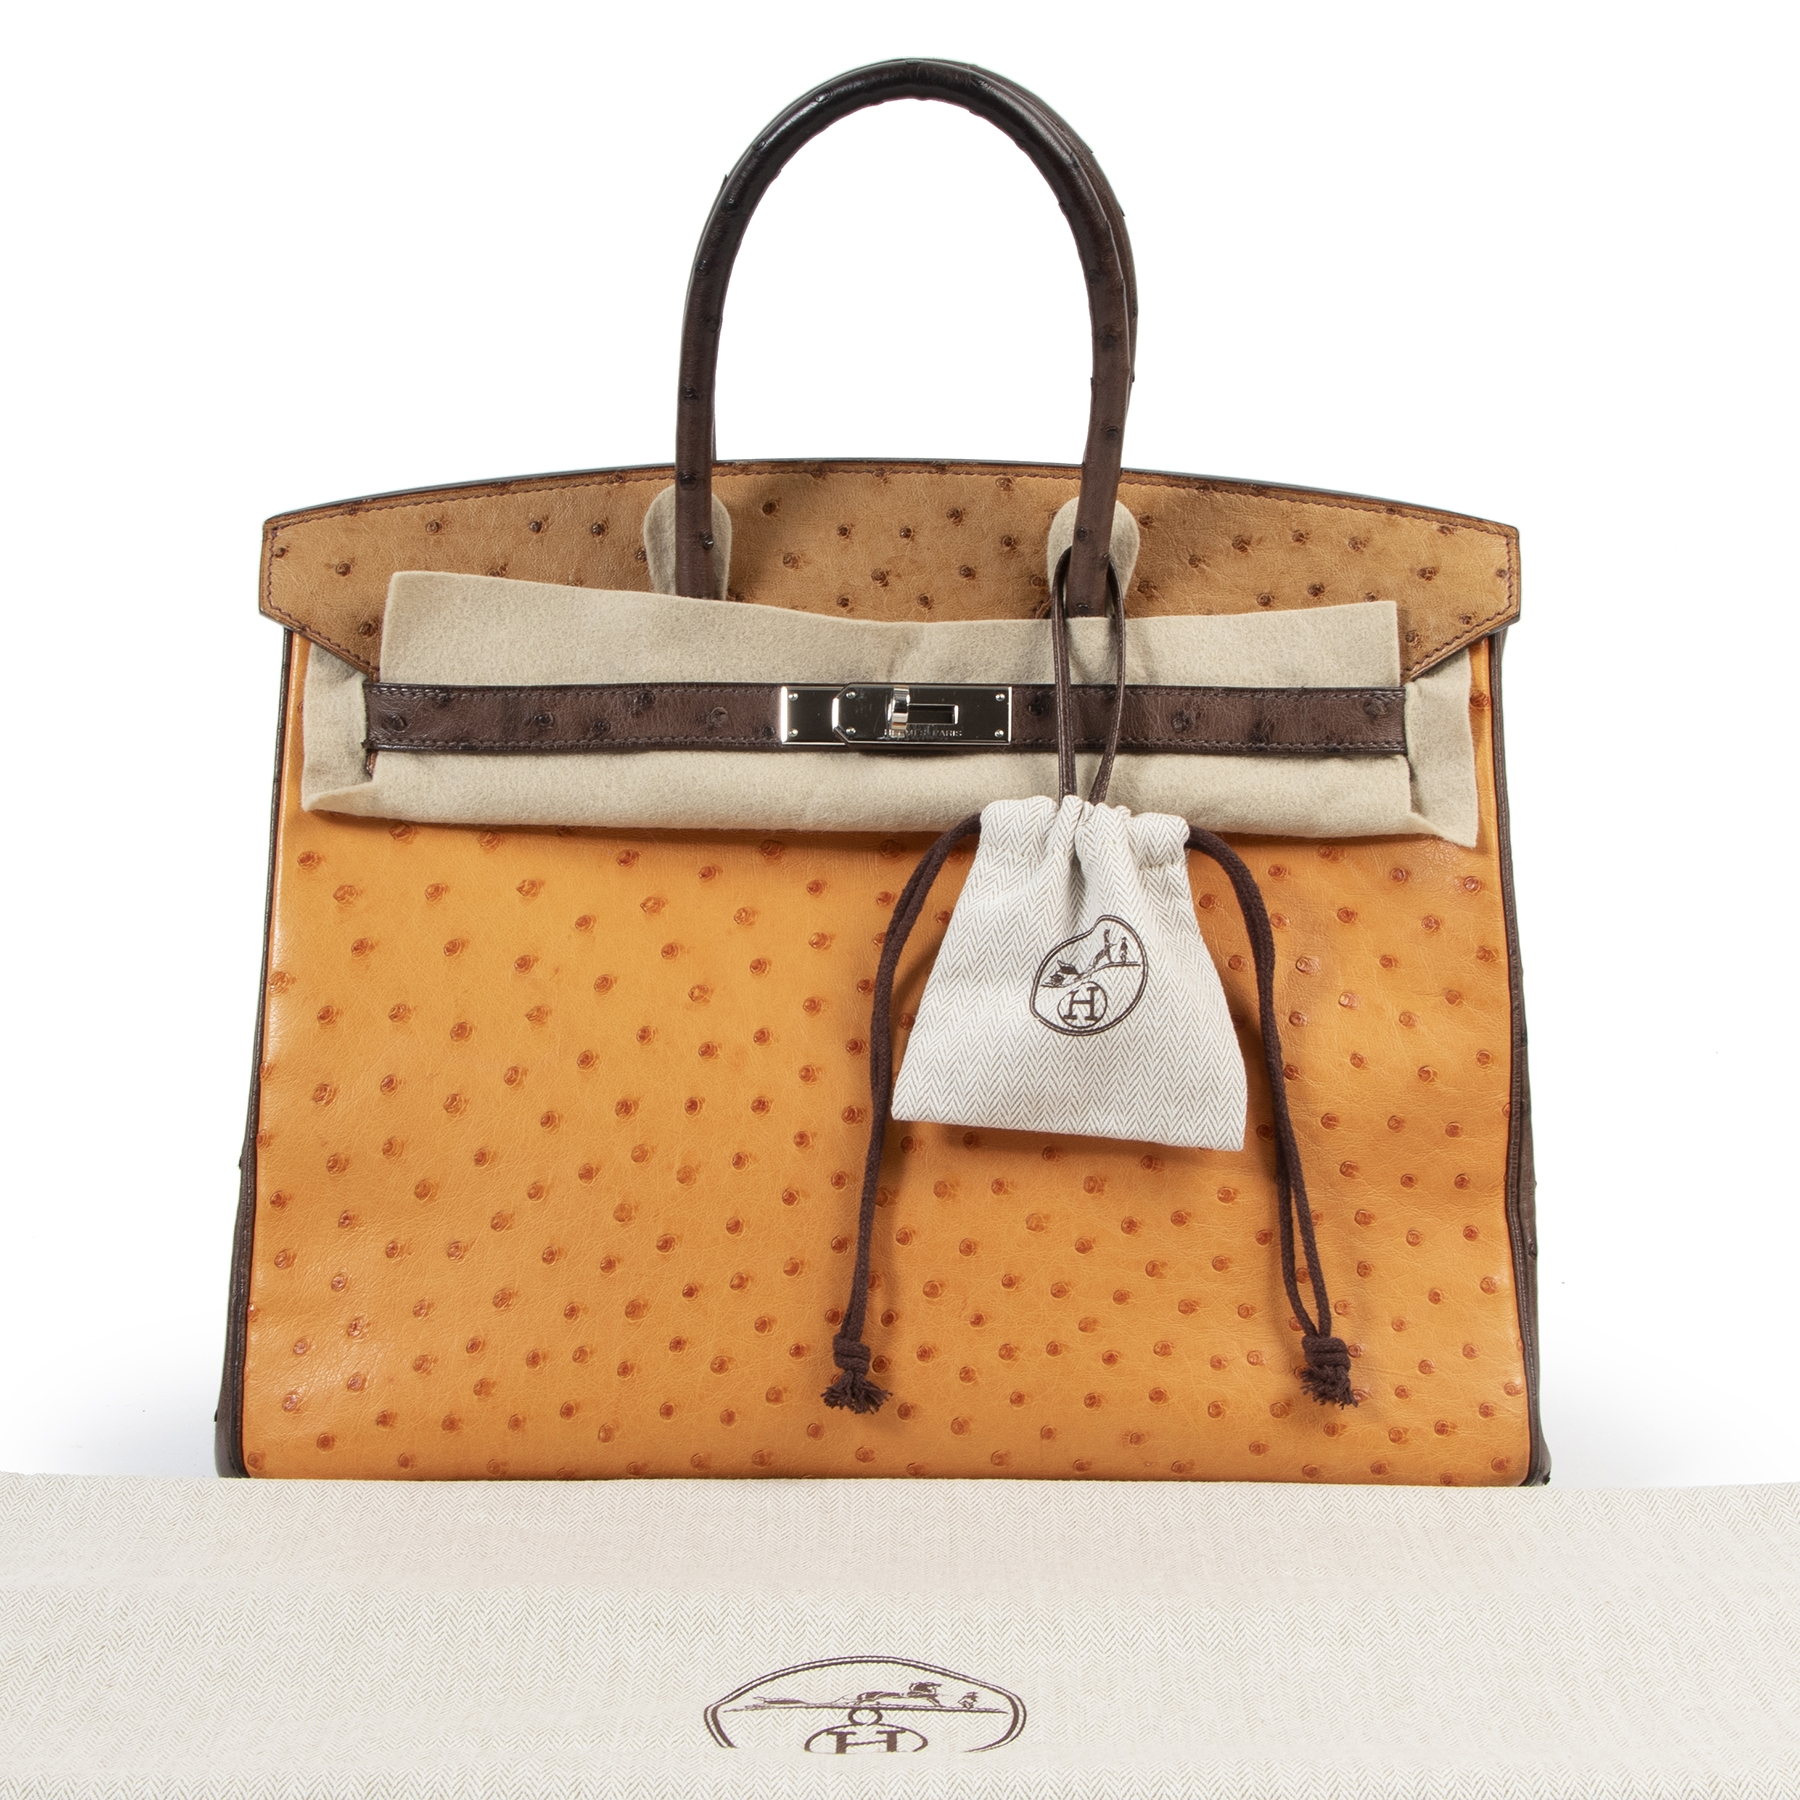 Are you looking for an authentic Hermès Birkin 35 Tricolore Autruche Doublure Chevre Pigmente PHW?